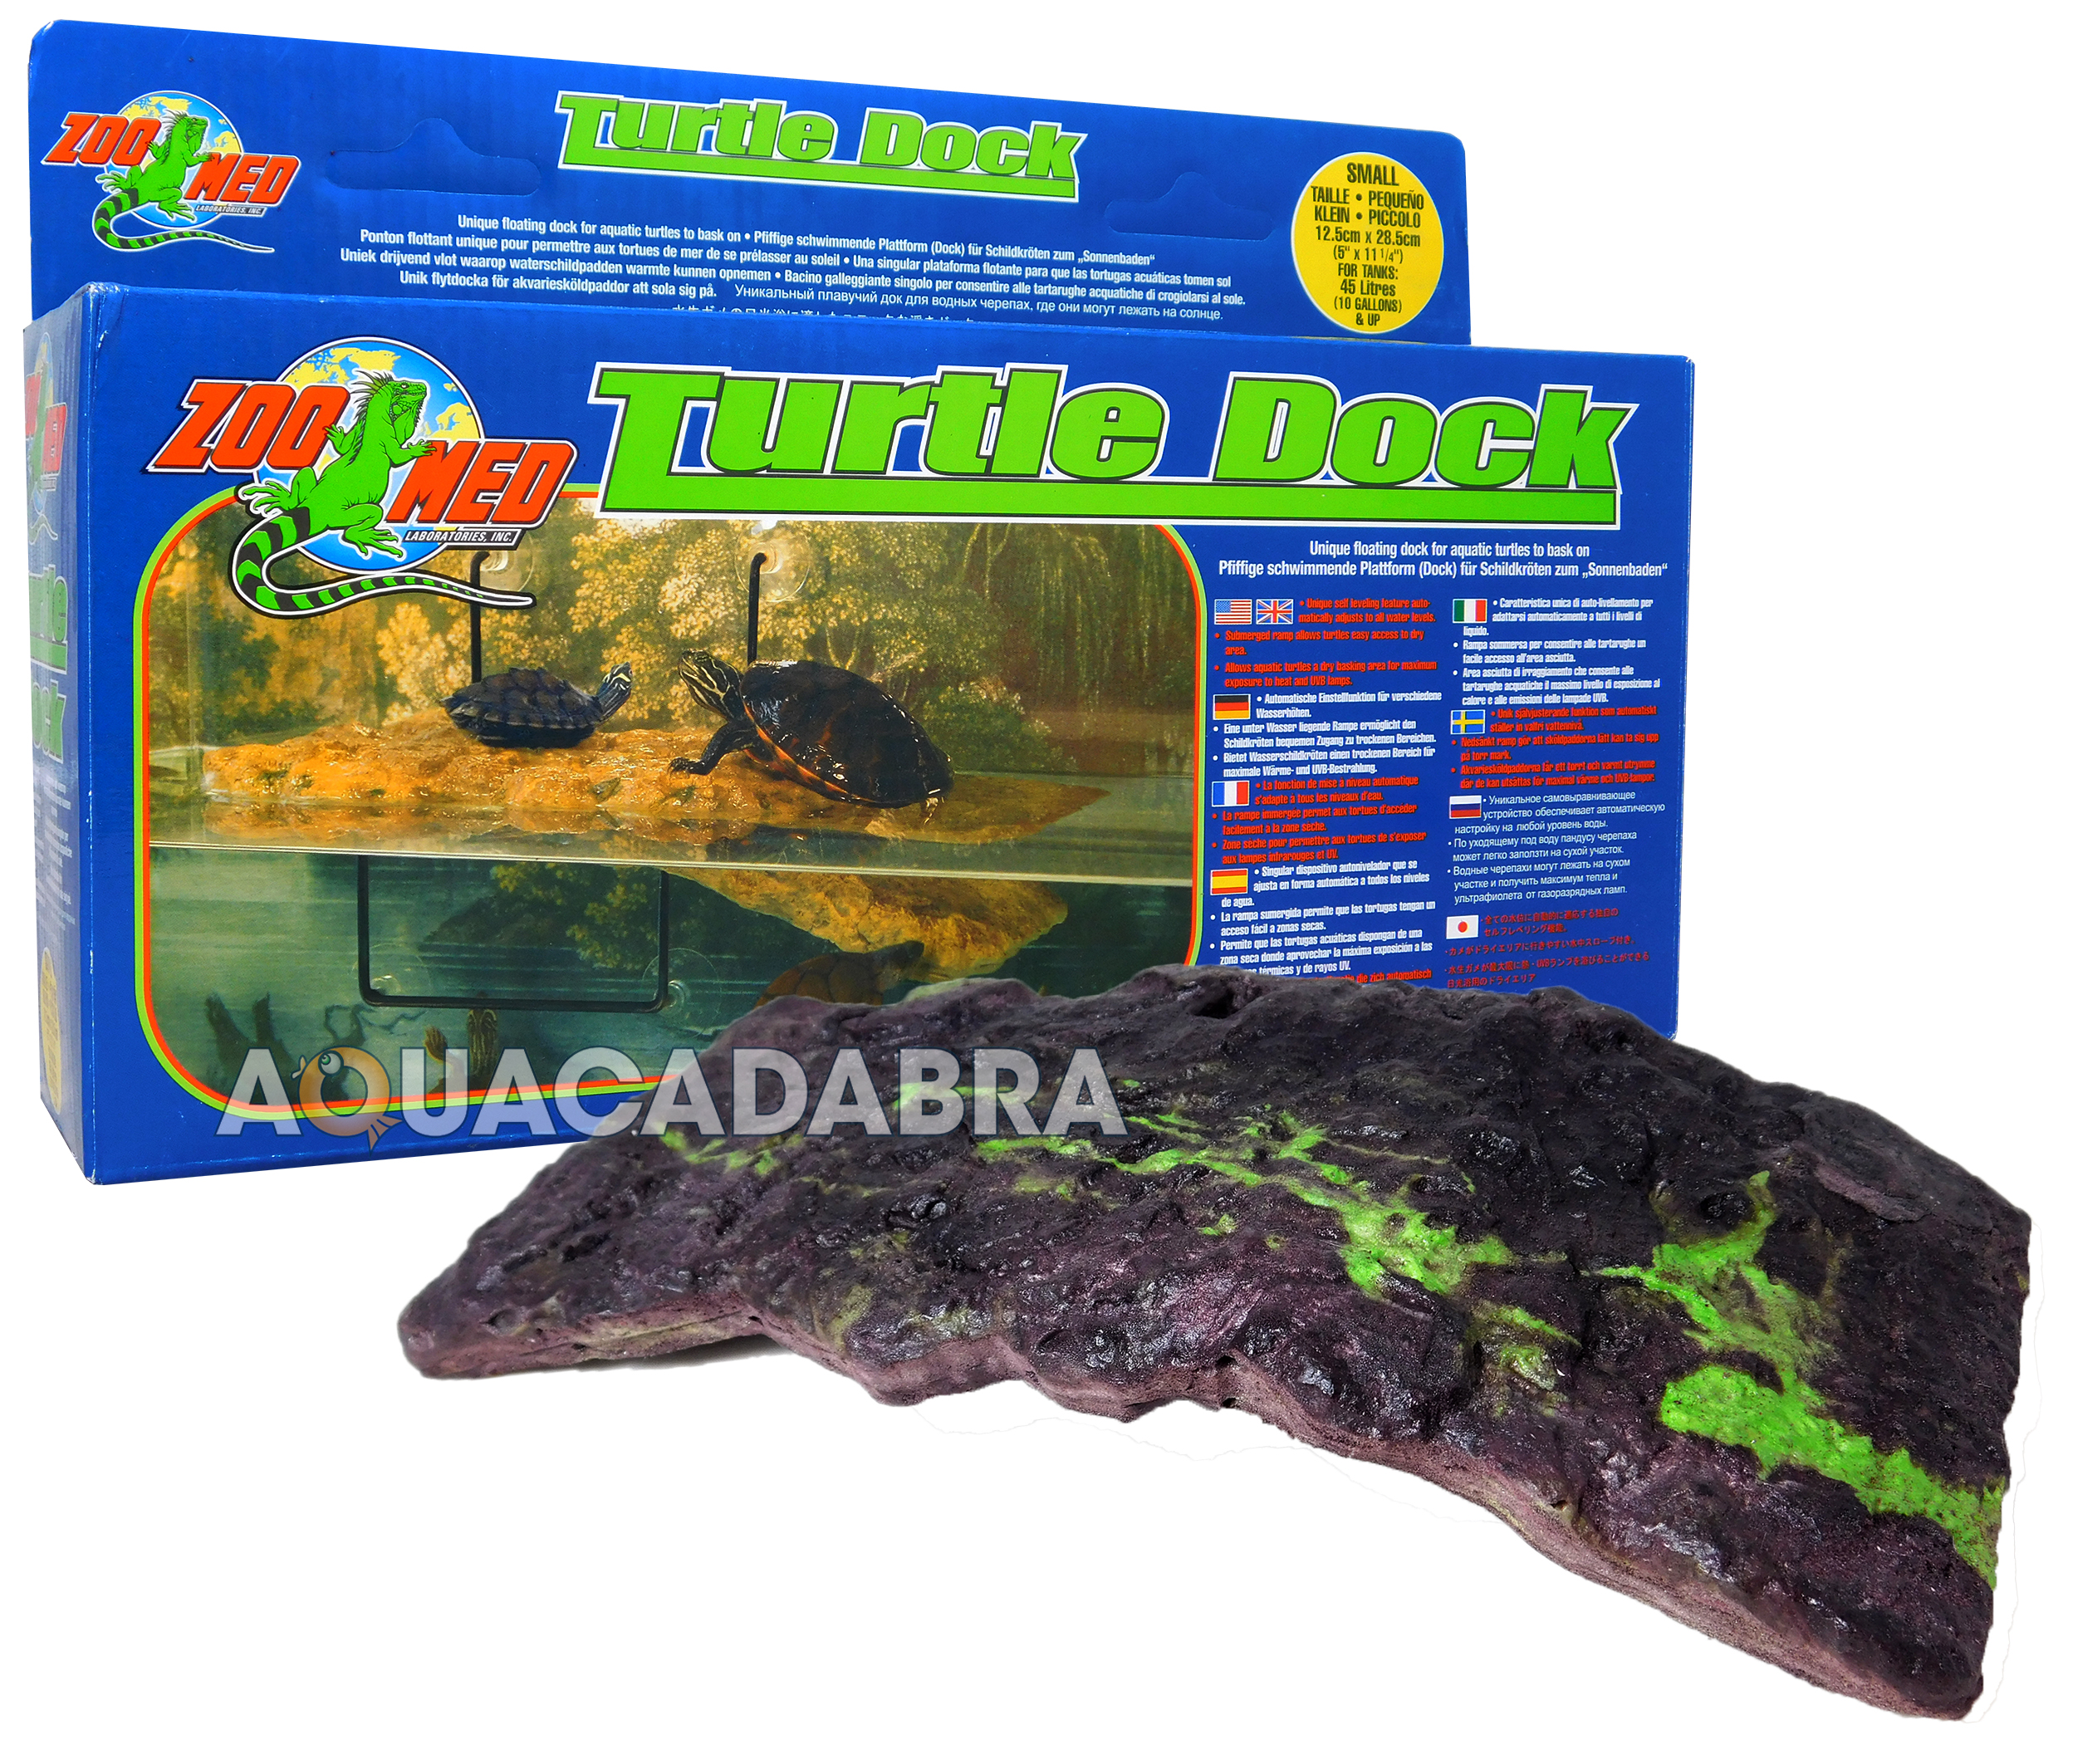 ZOO-MED-FLOATING-TURTLE-DOCK-SMALL-MEDIUM-LARGE-amp-SUCKERS-ZOOMED-TERRAPINS